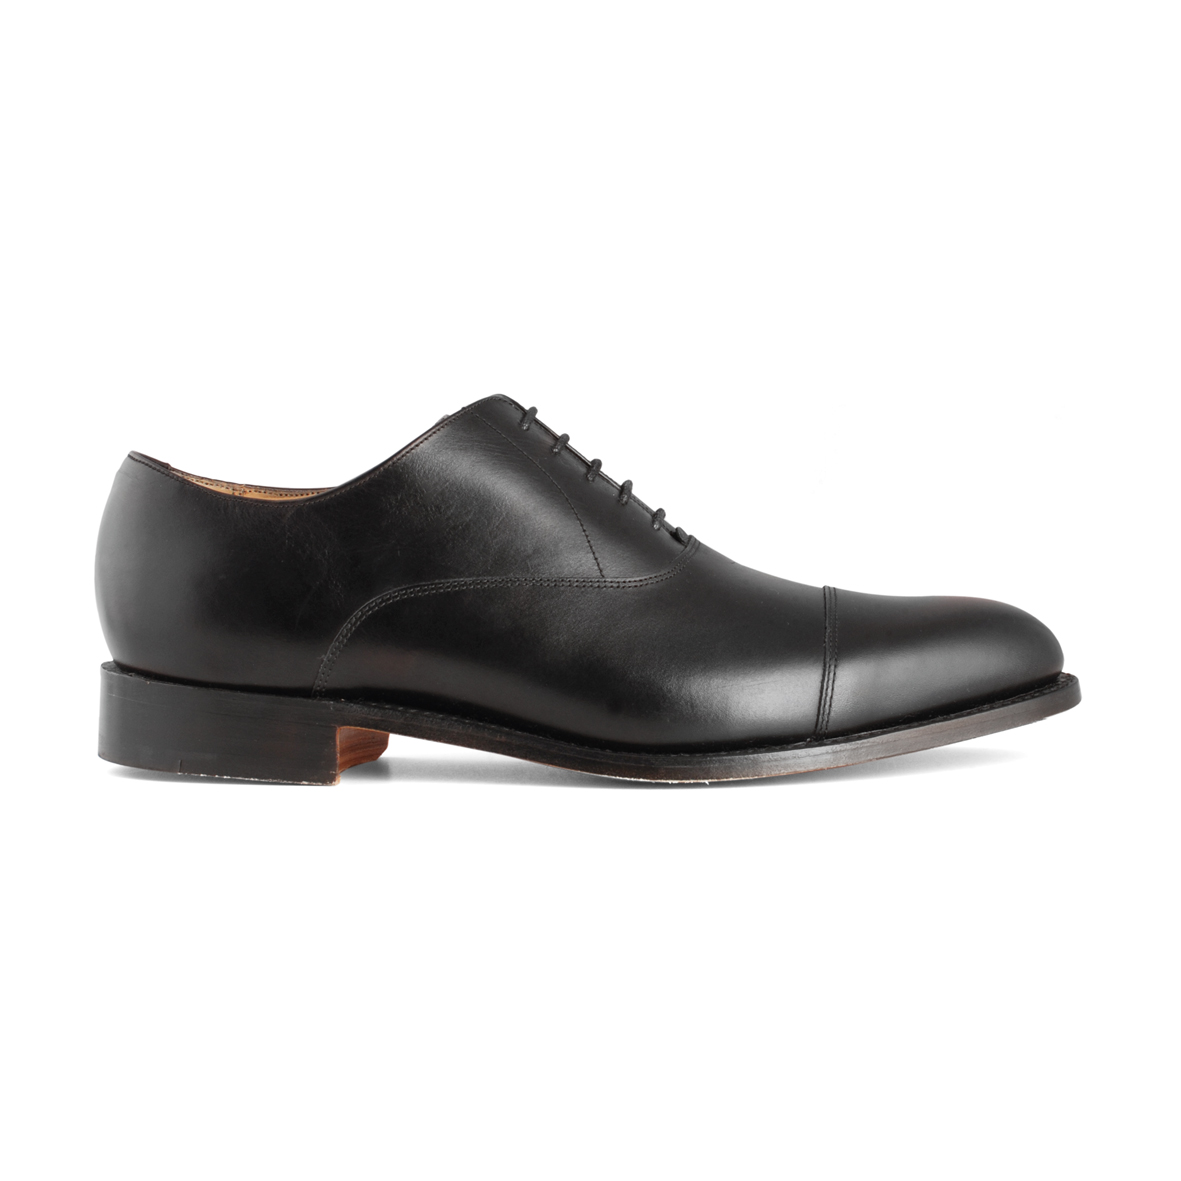 Barker Duxford Black Calf shoes